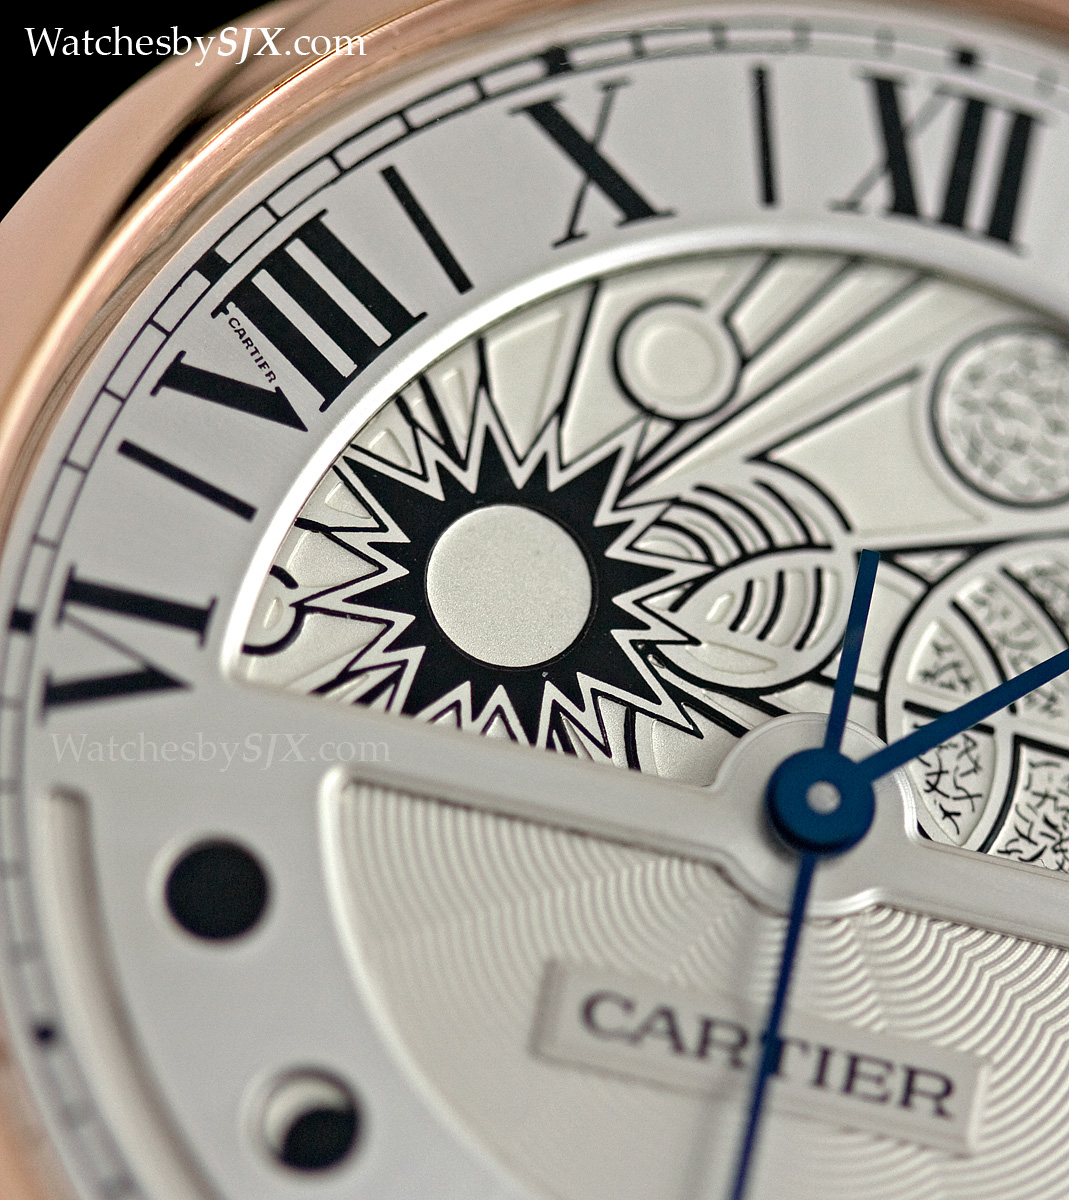 Rotonde-de-Cartier-Day-and-Night-SIHH-2014-2810291